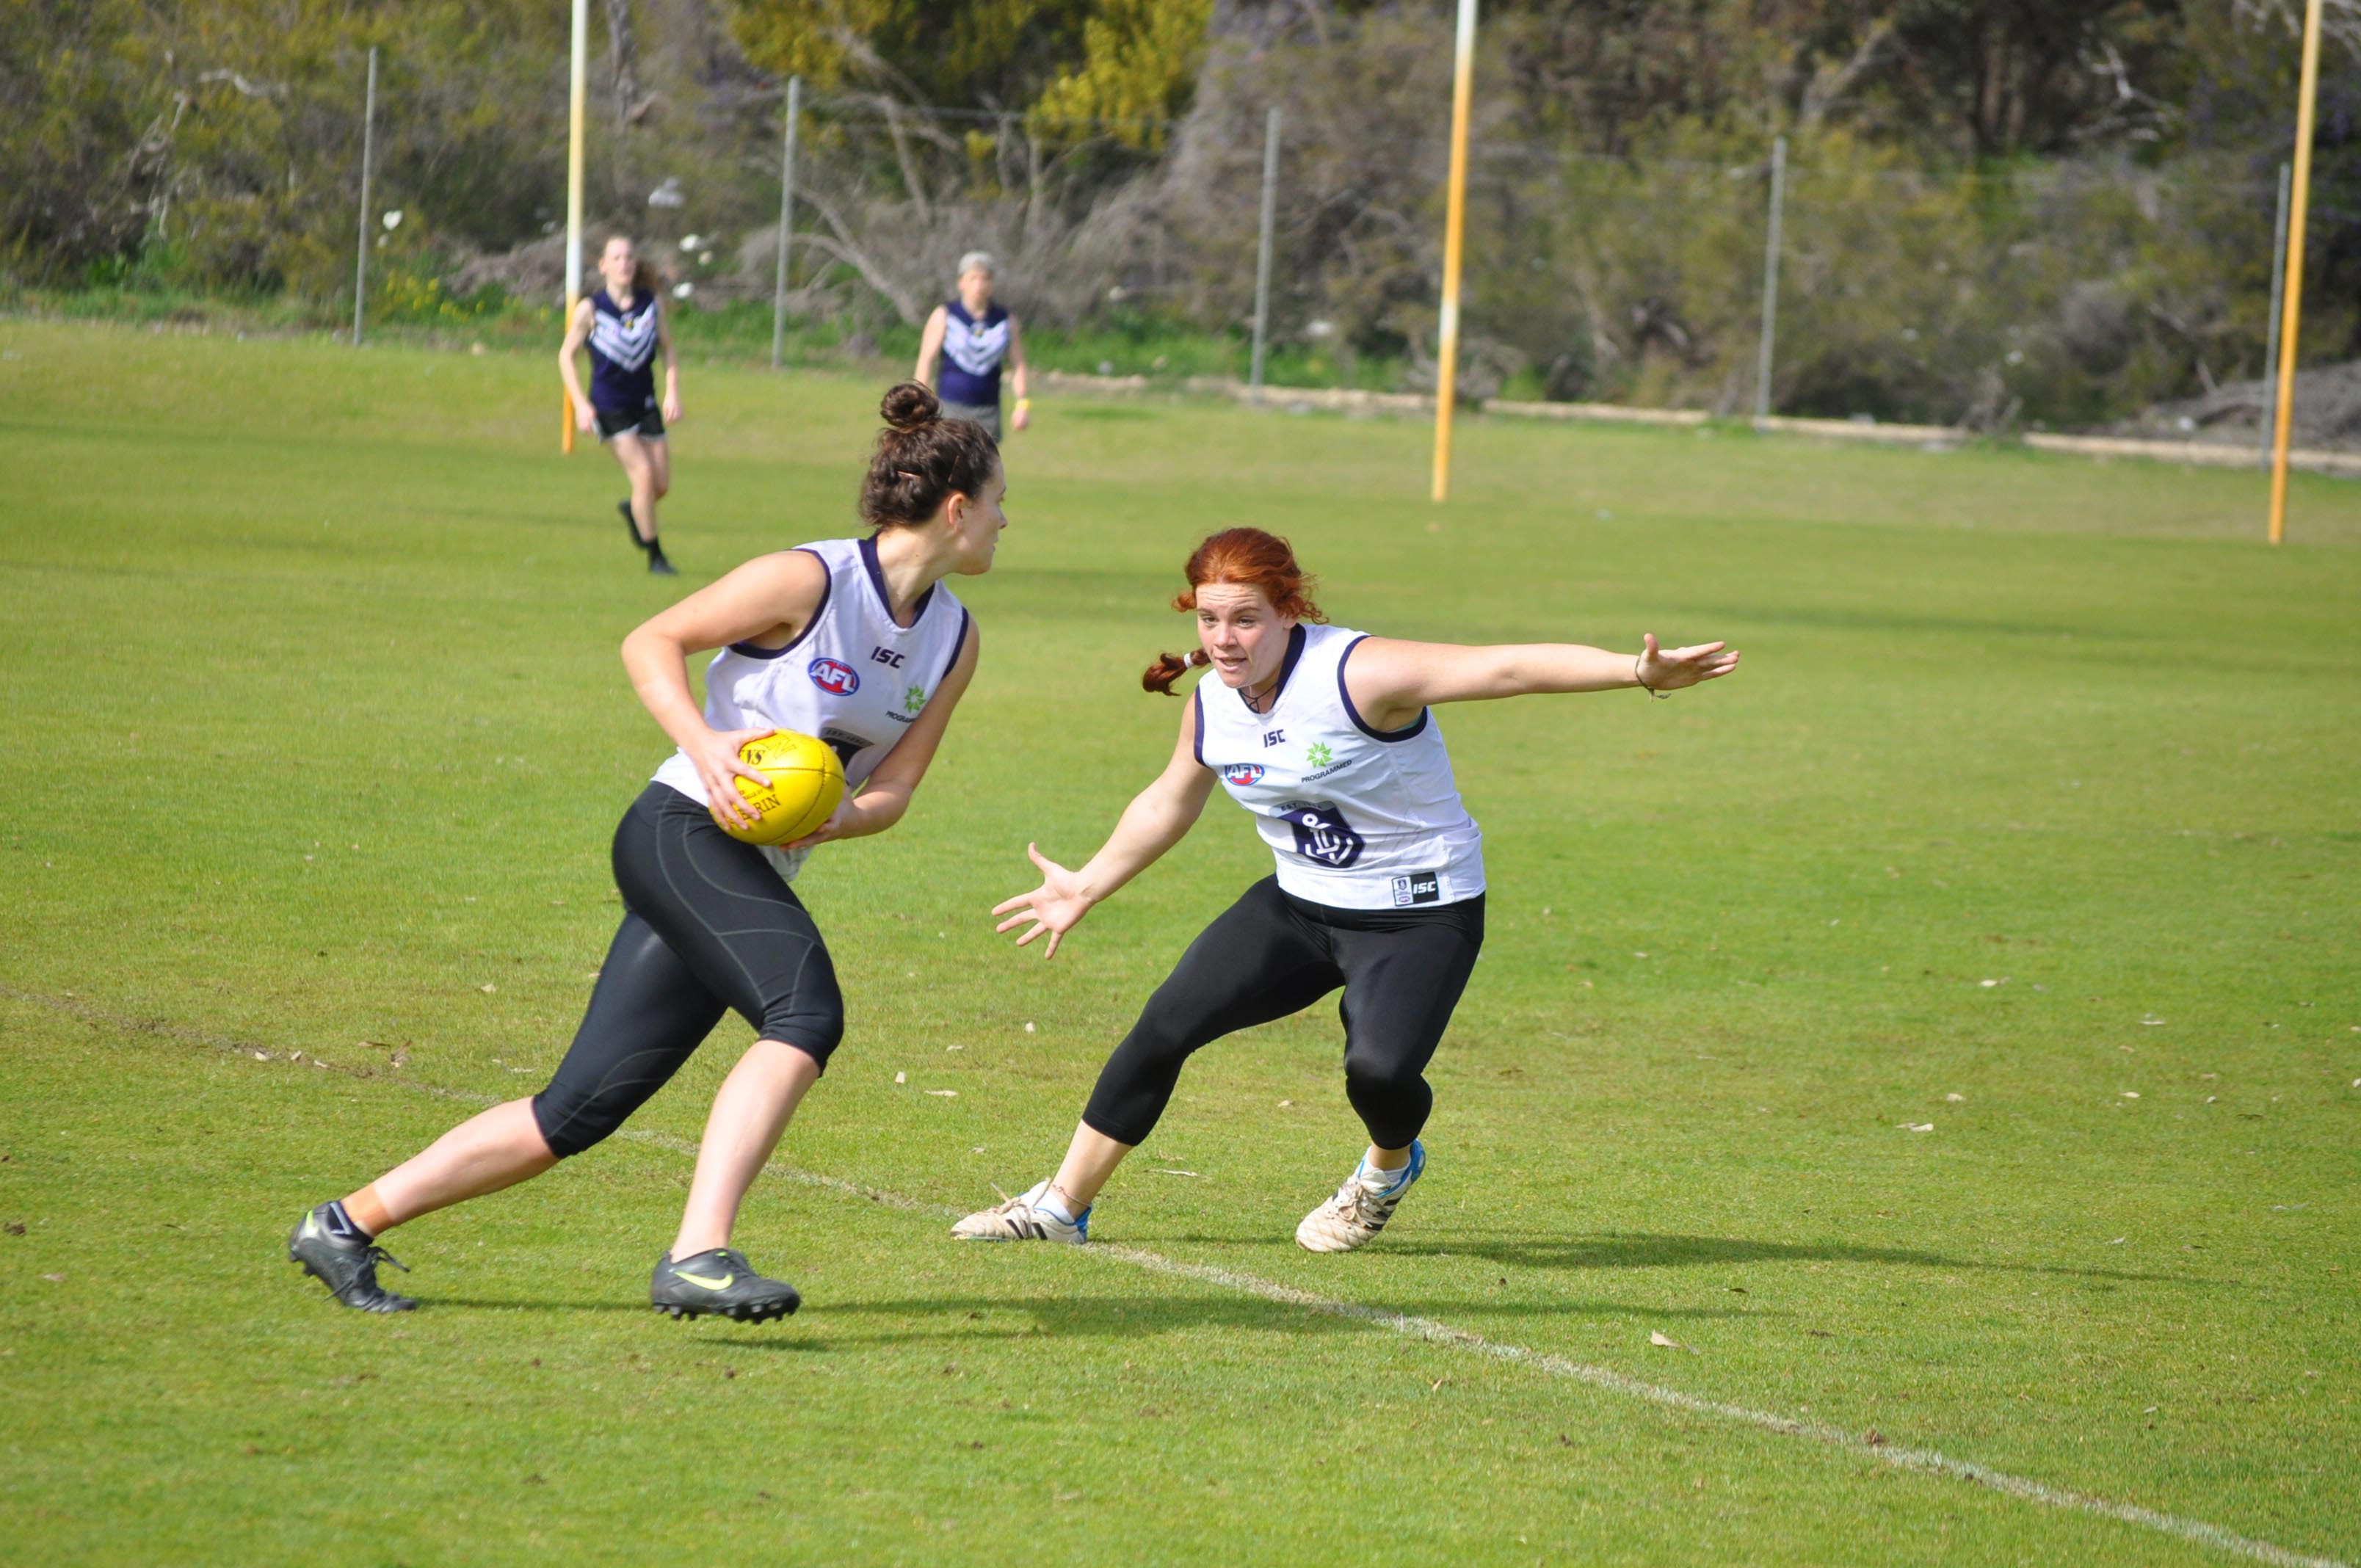 Two potential Fremantle Dockers players show their stuff during the talent search.